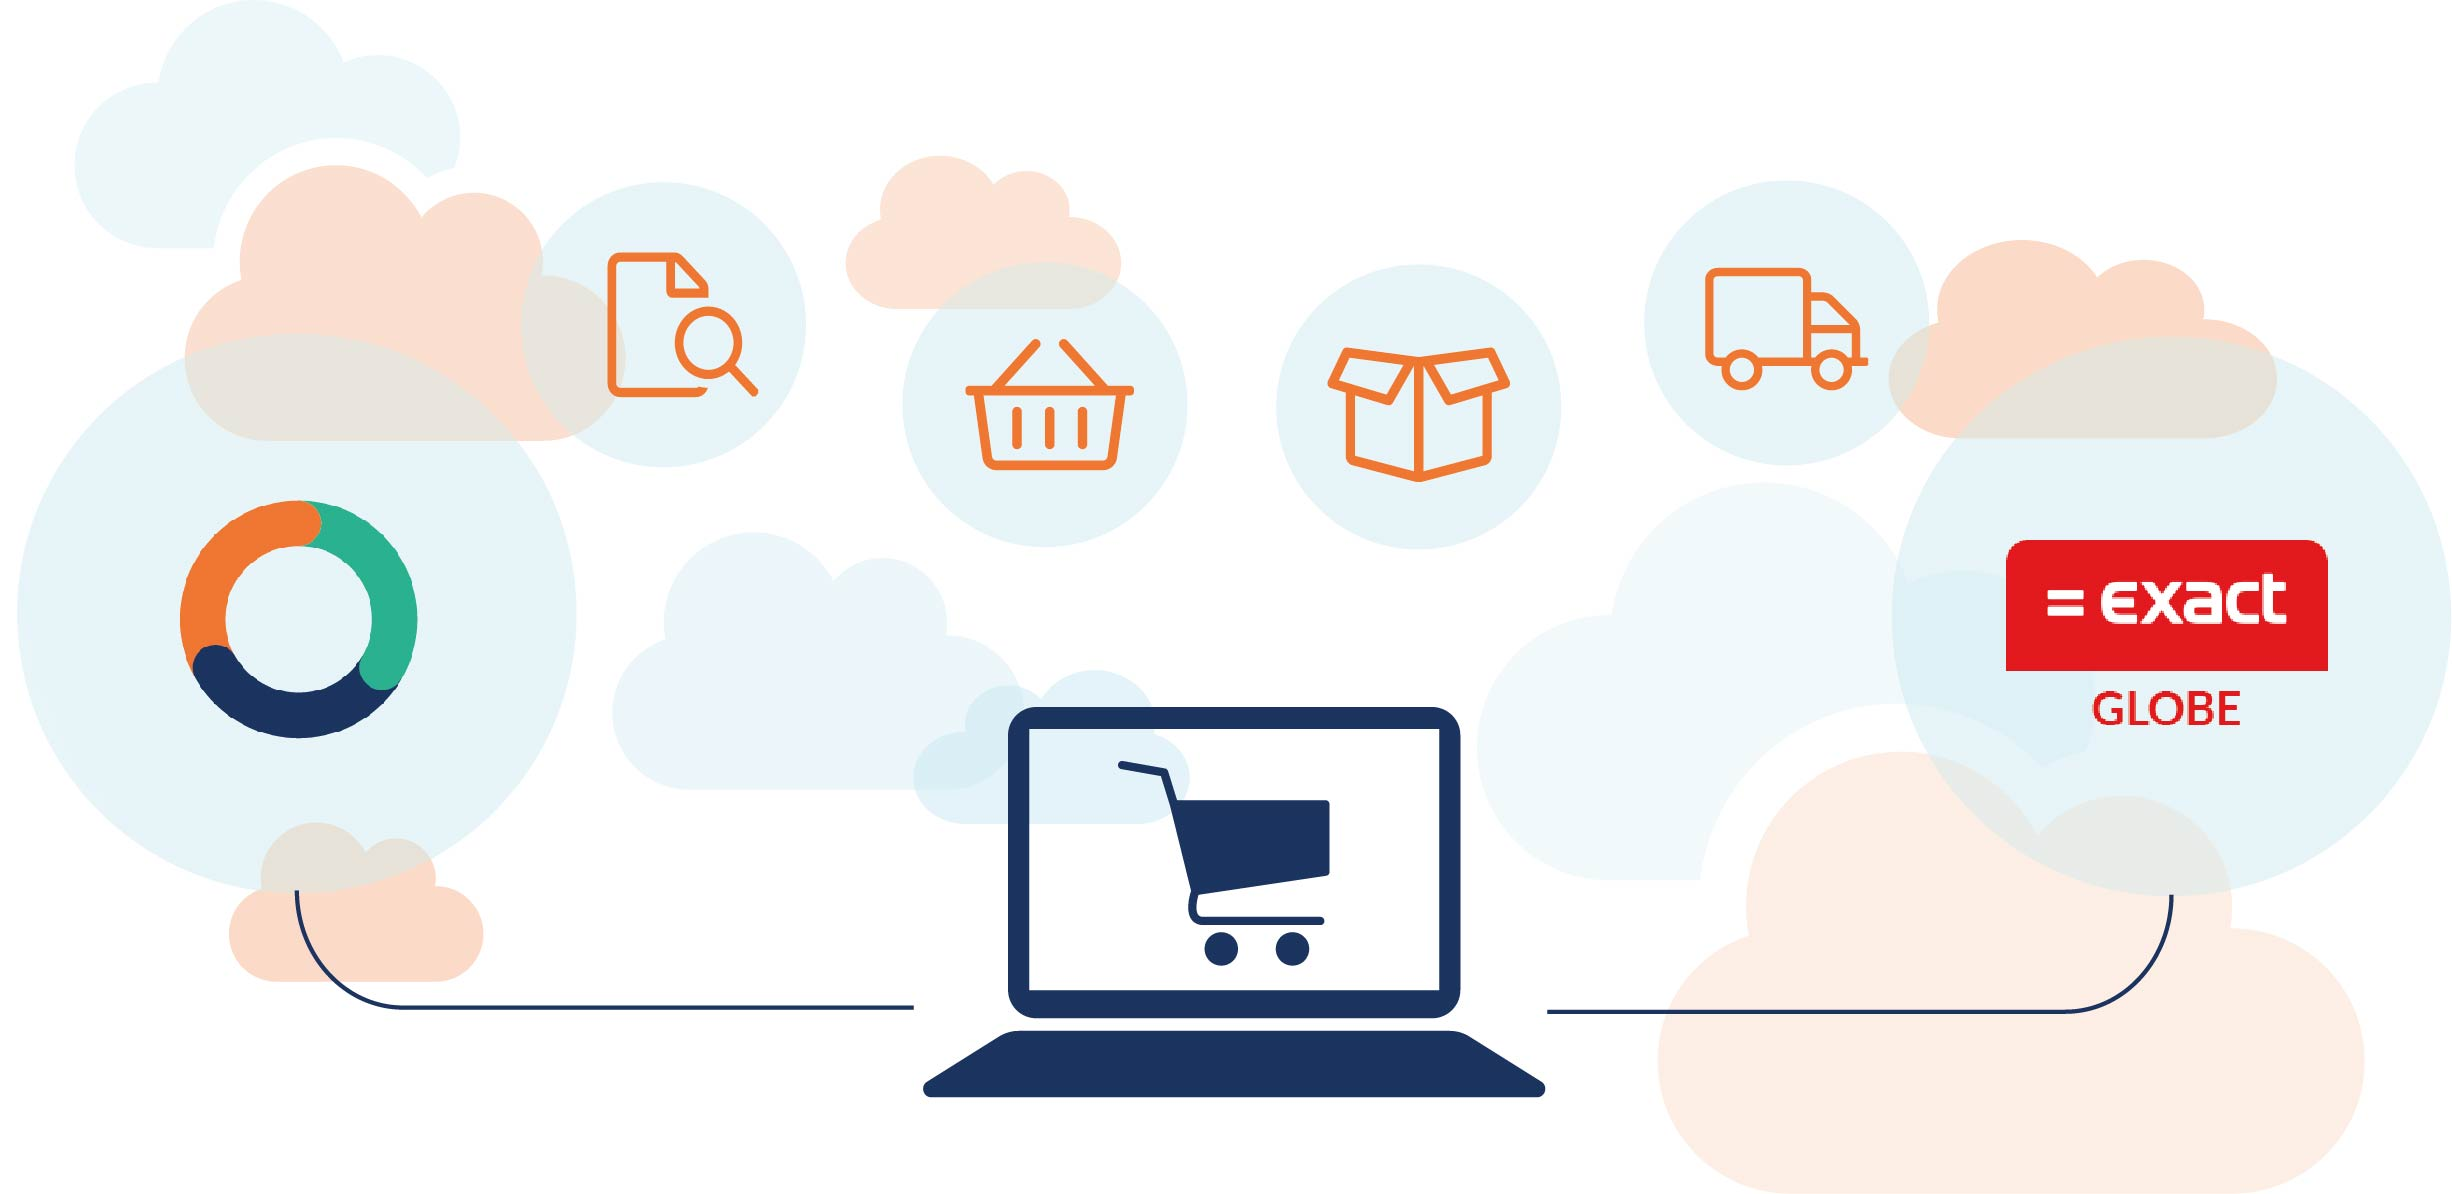 CloudSuite e-commerce integratie met Exact Globe